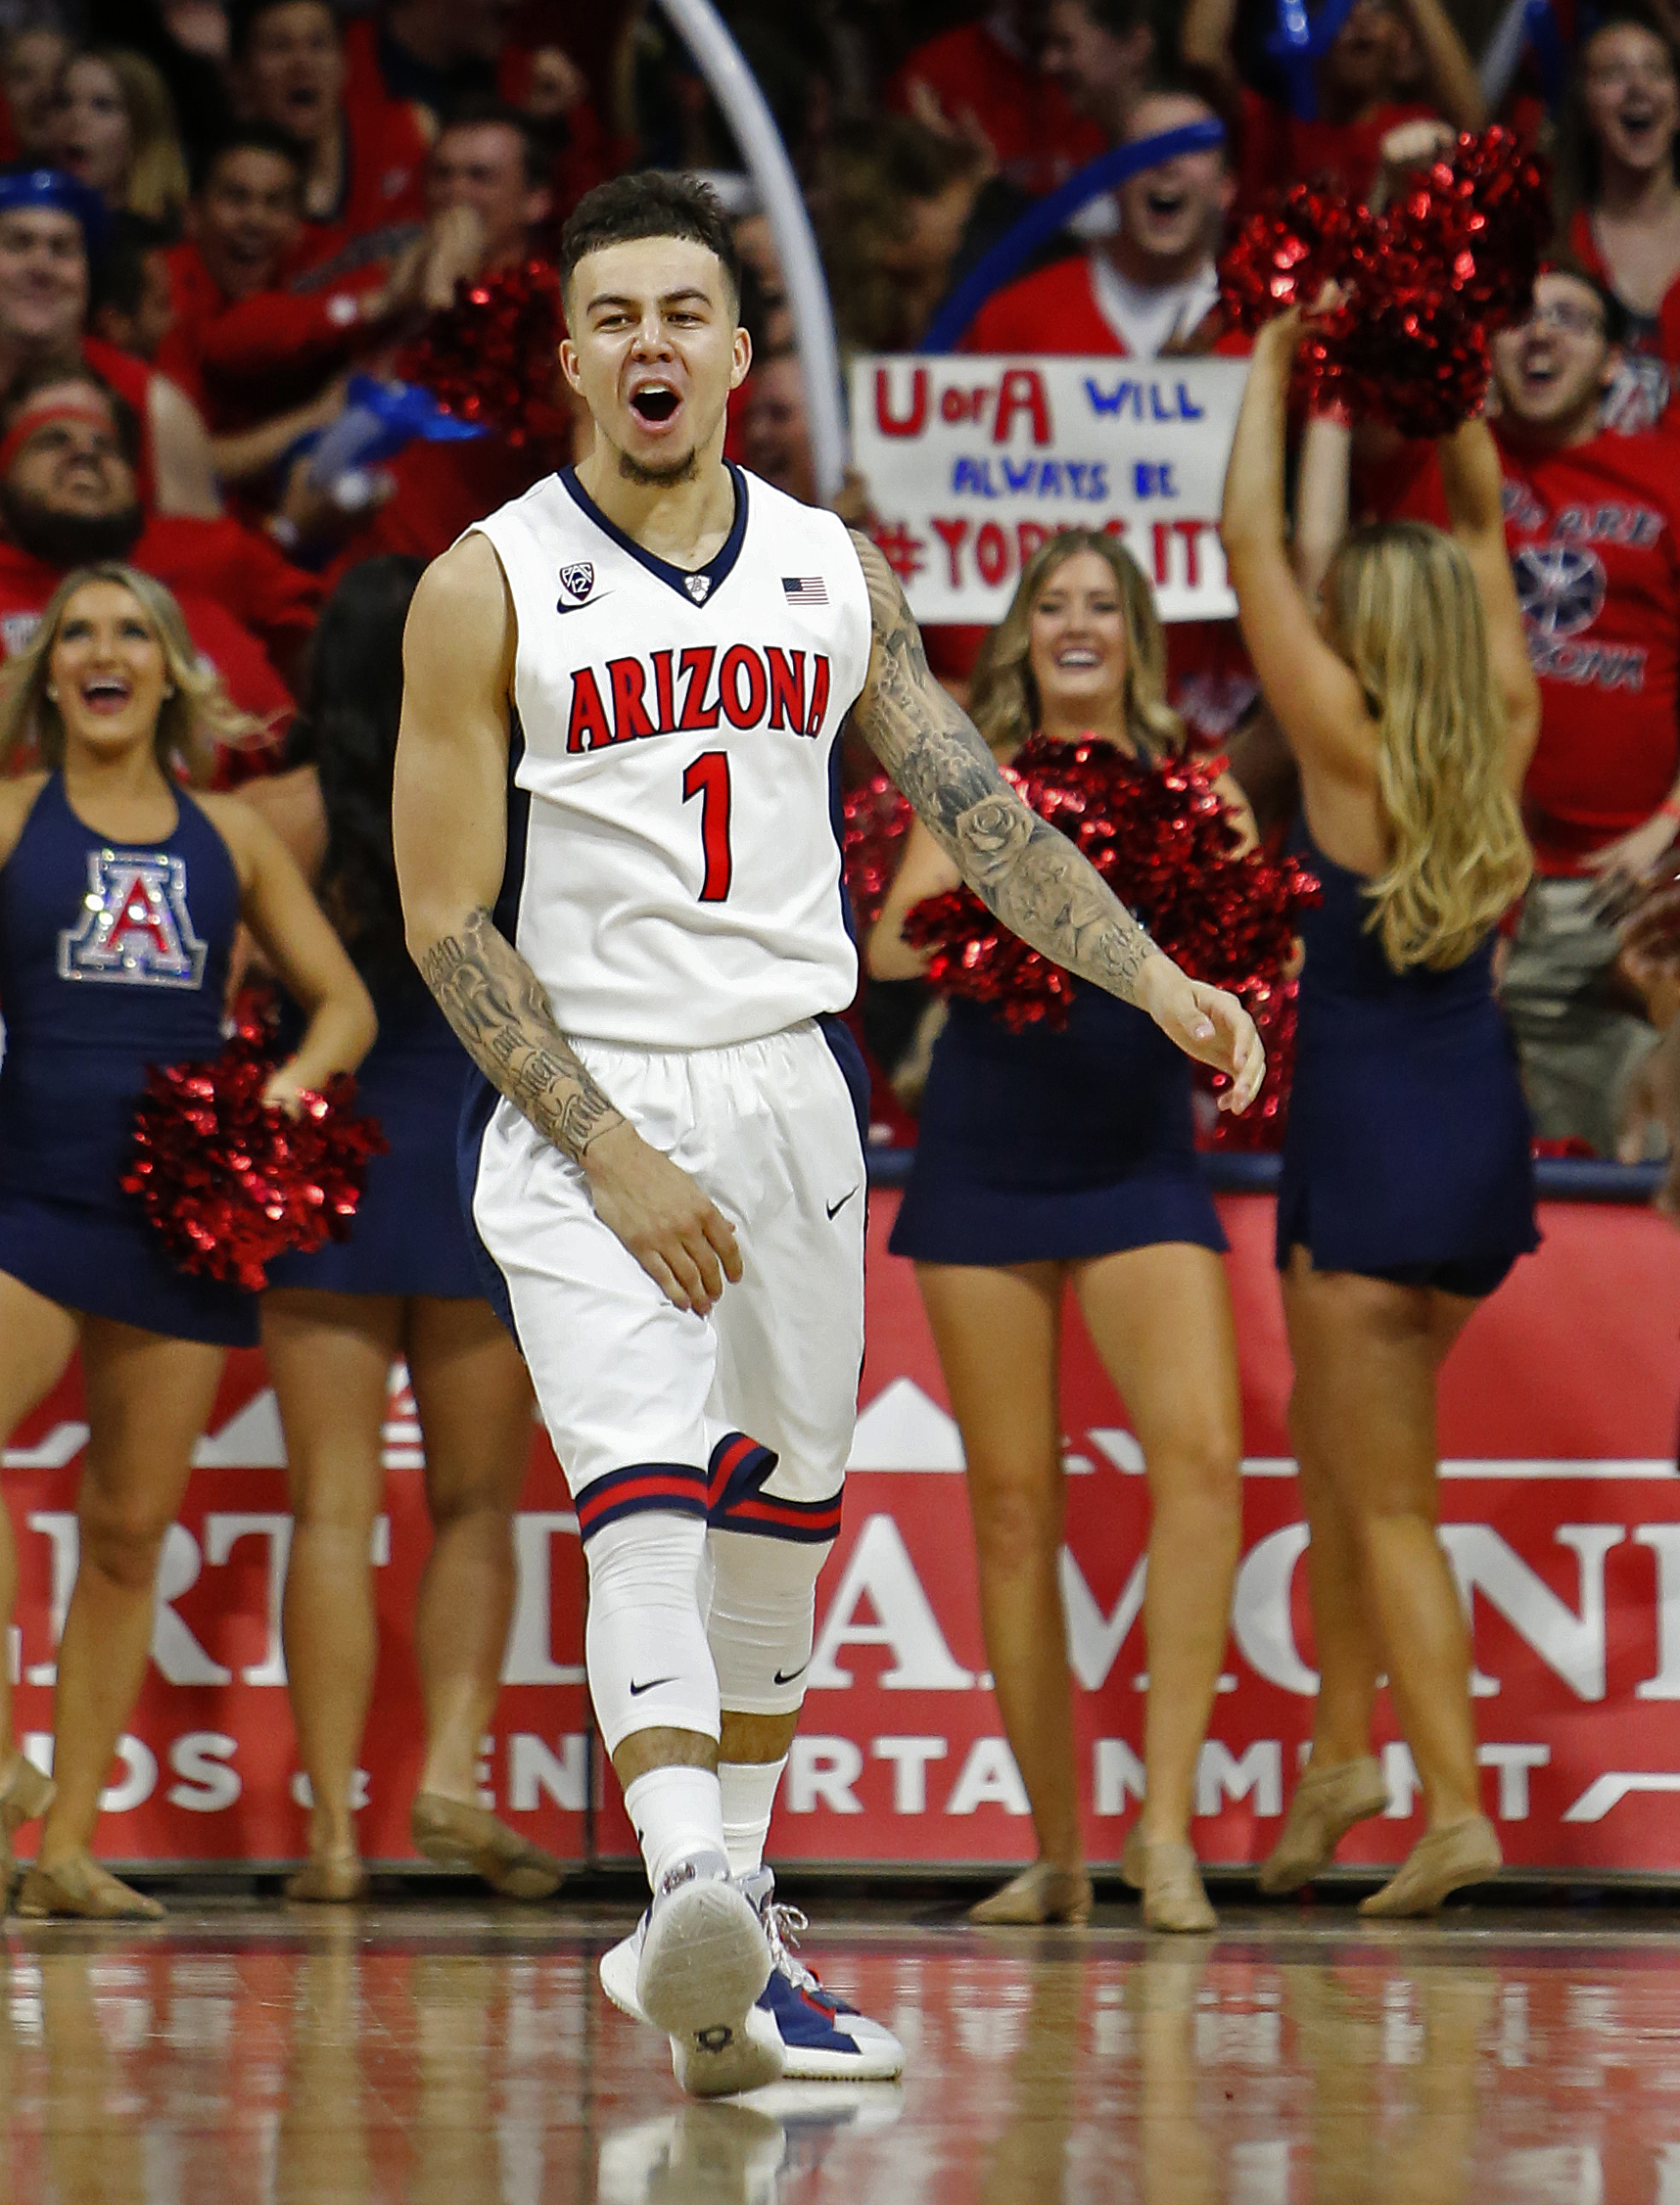 Arizona guard Gabe York (1) celebrates after scoring against Stanford during the second half of an NCAA college basketball game, Saturday, March 5, 2016, in Tucson, Ariz. Arizona defeated Stanford  94-62. (AP Photo/Rick Scuteri)